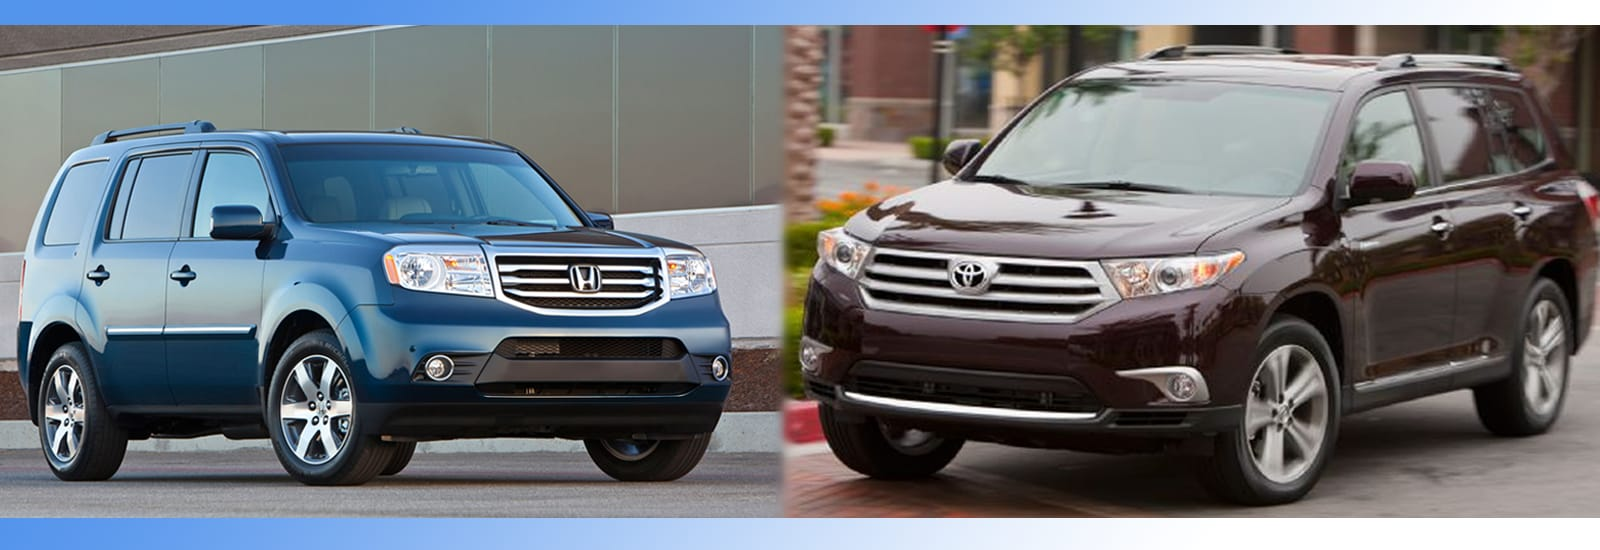 2014 honda pilot vs 2014 toyota highlander complete breakdown. Black Bedroom Furniture Sets. Home Design Ideas